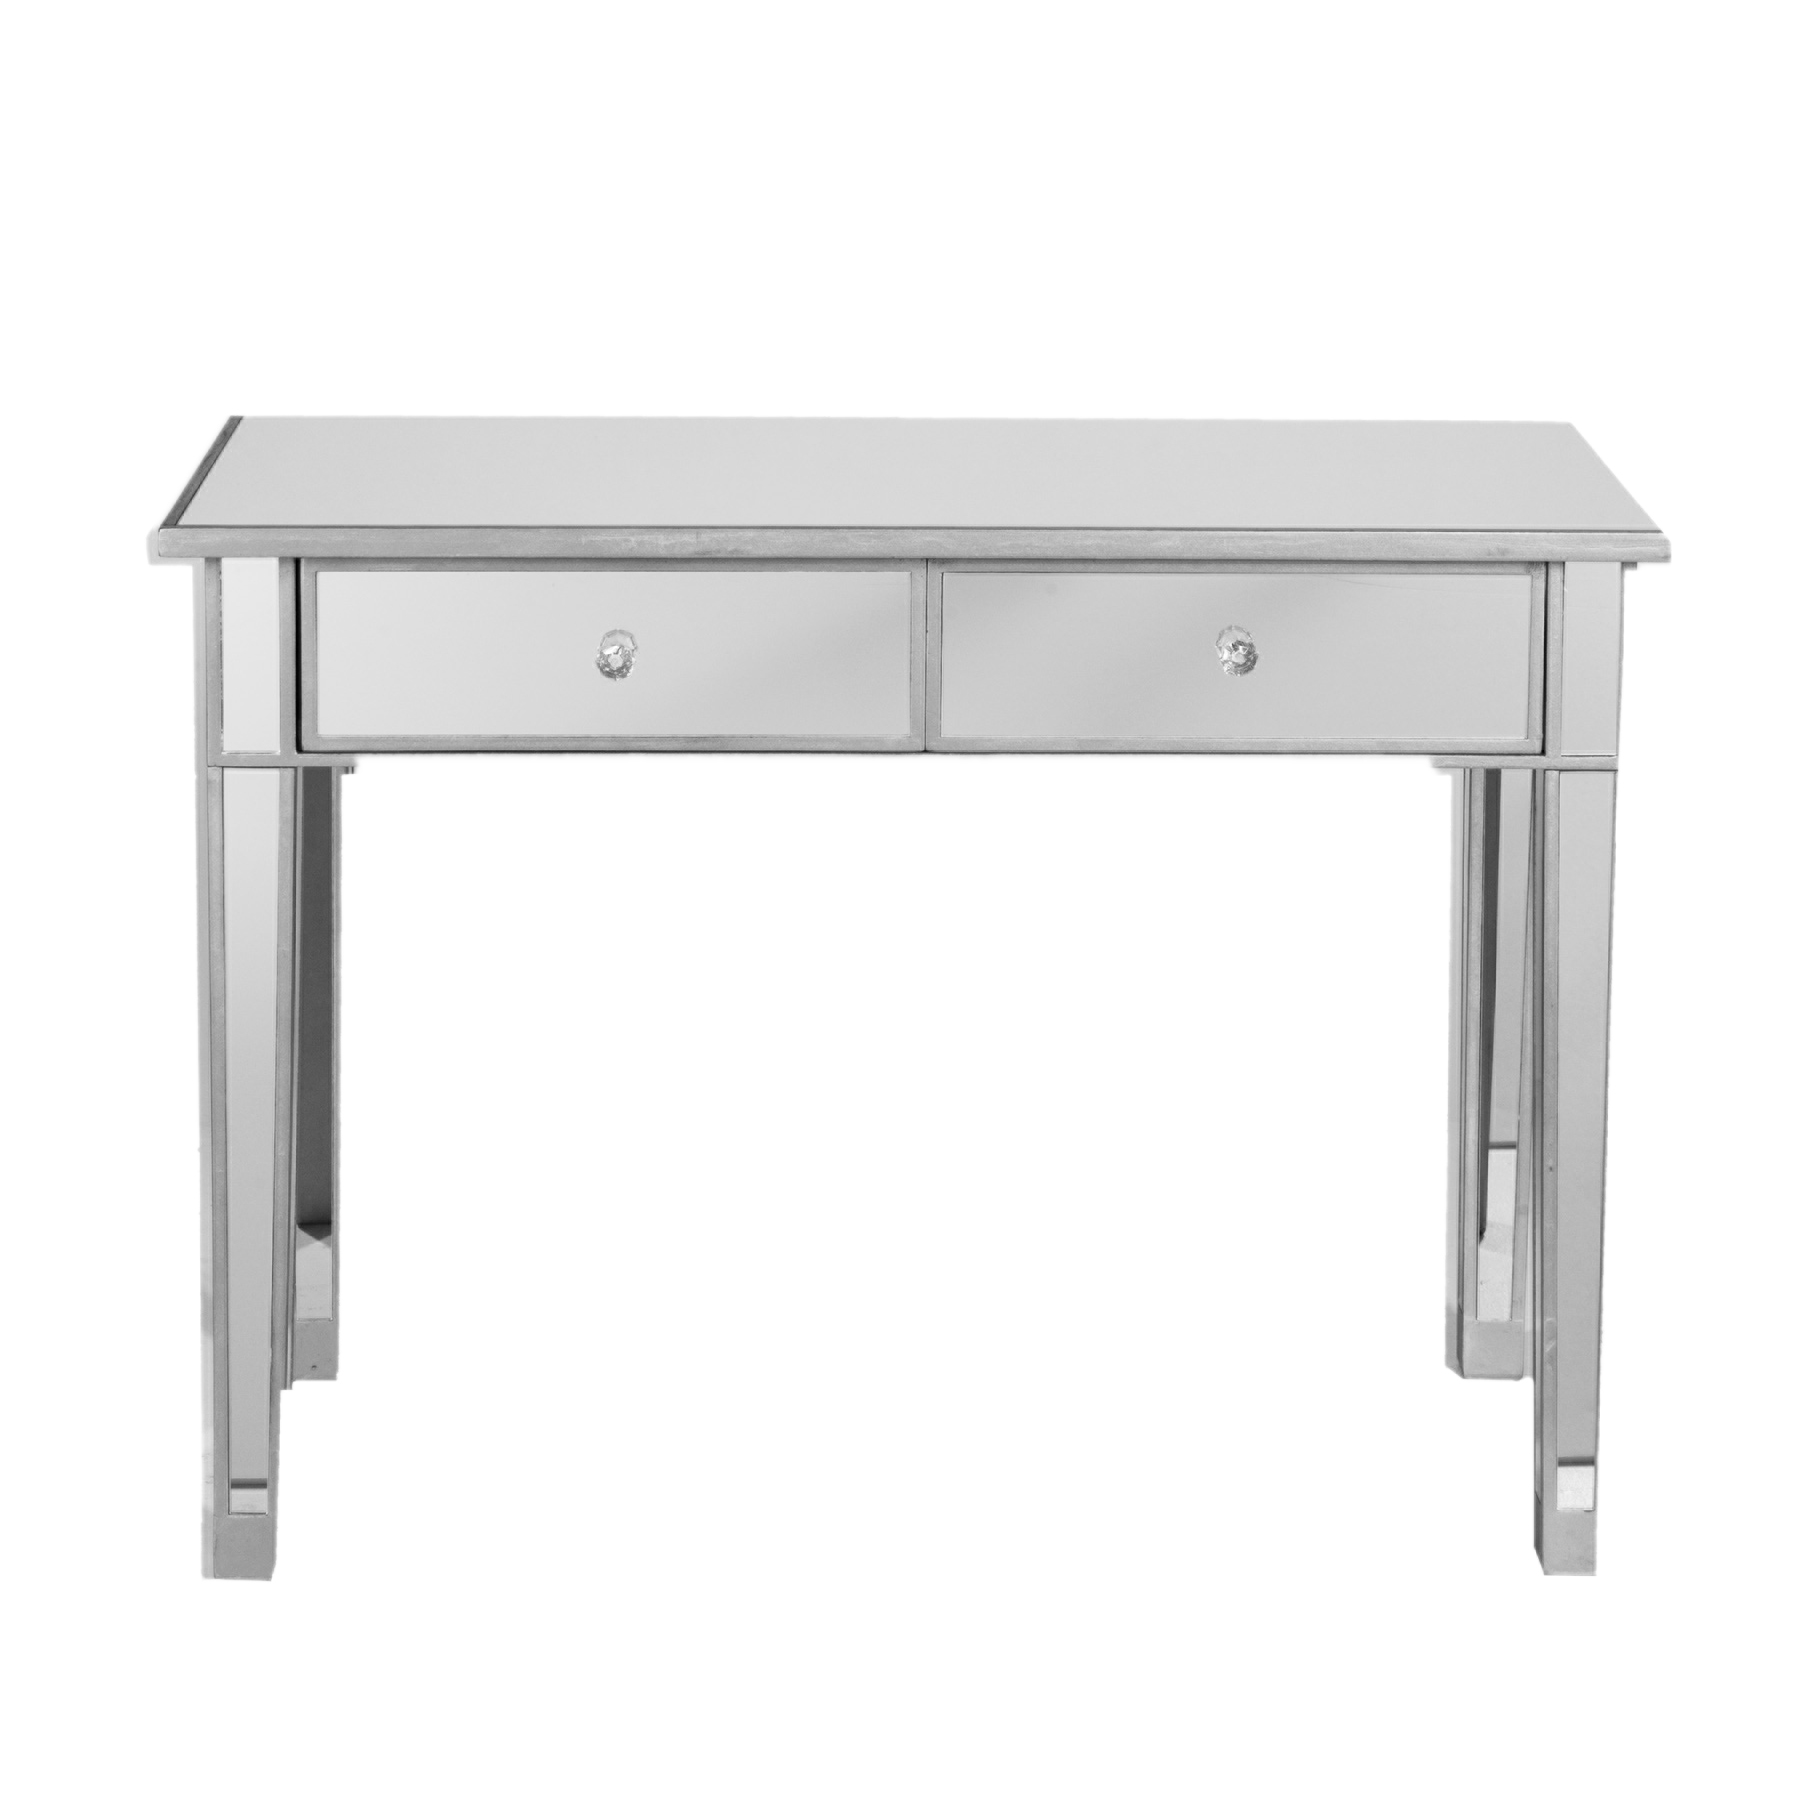 Southern Enterprises Illusions Collection Mirrored Console Table Desk by Southern Enterprises Inc